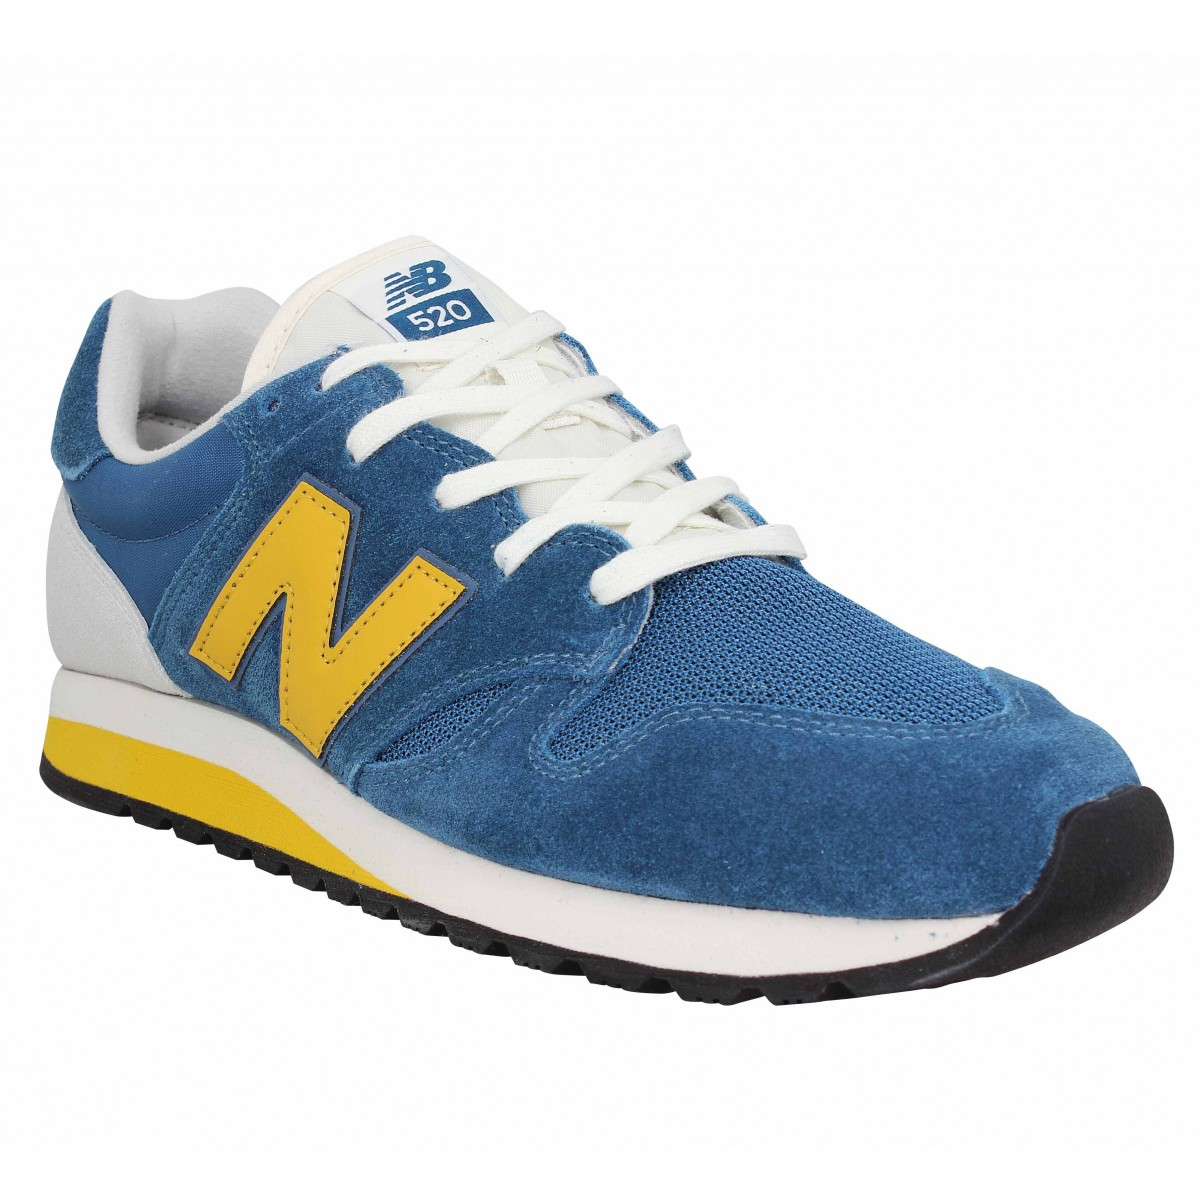 a4878f995aa1 Baskets NEW BALANCE 520 velours toile Homme Bleu